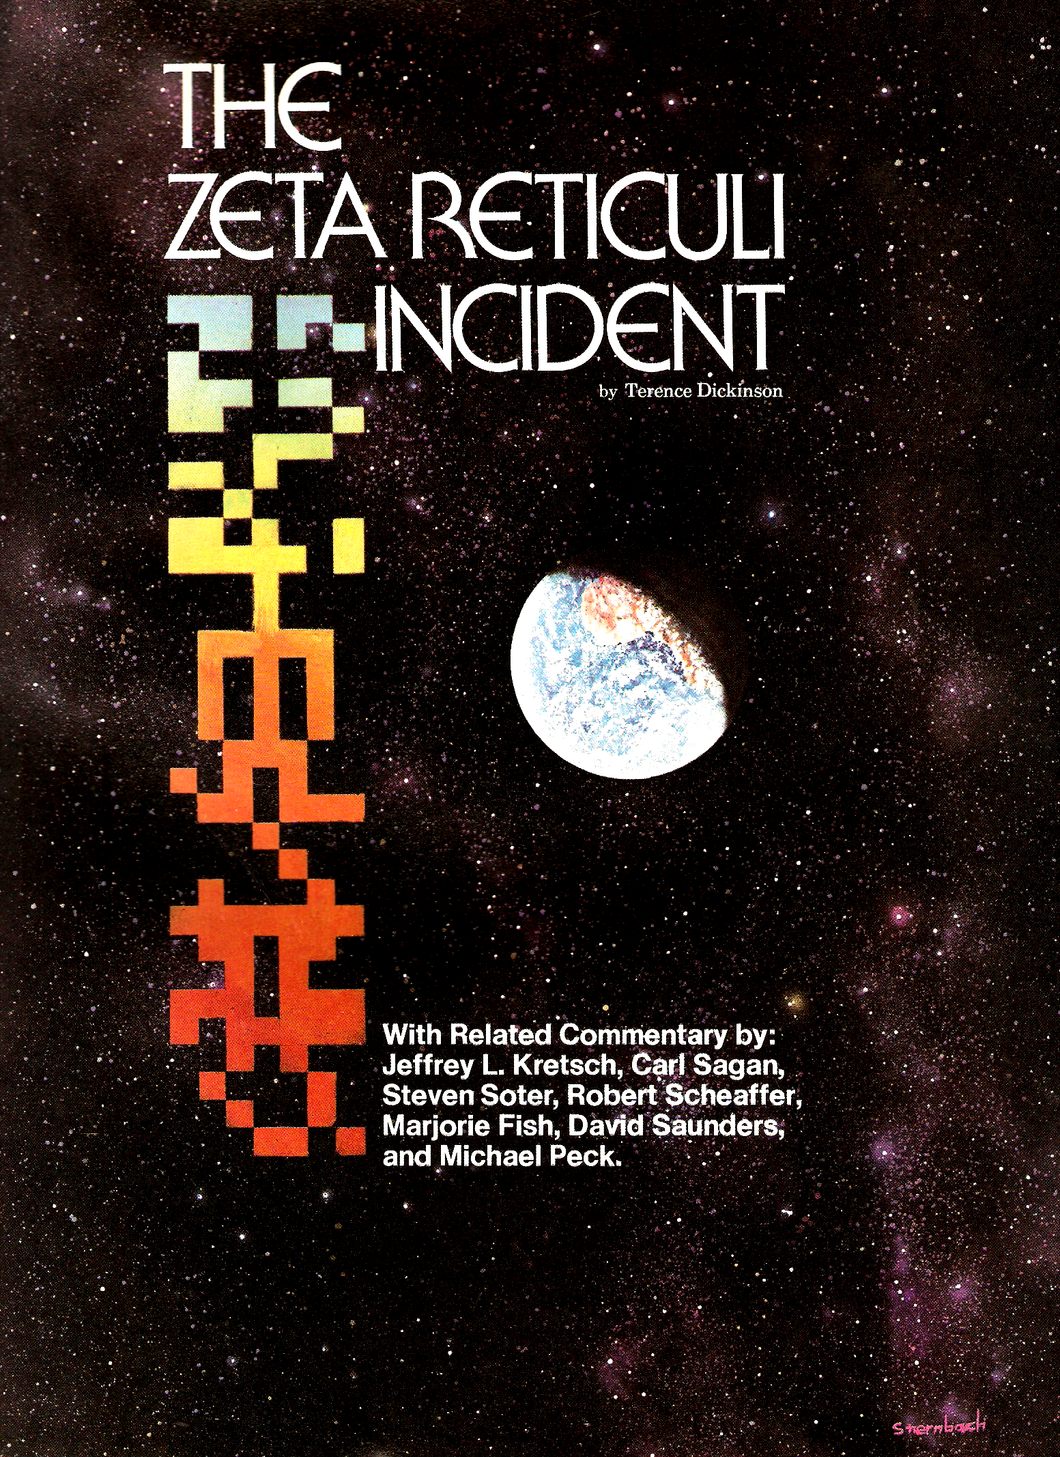 Zeta Reticuli Incident: The Star Map by the Hills. Paperback edition